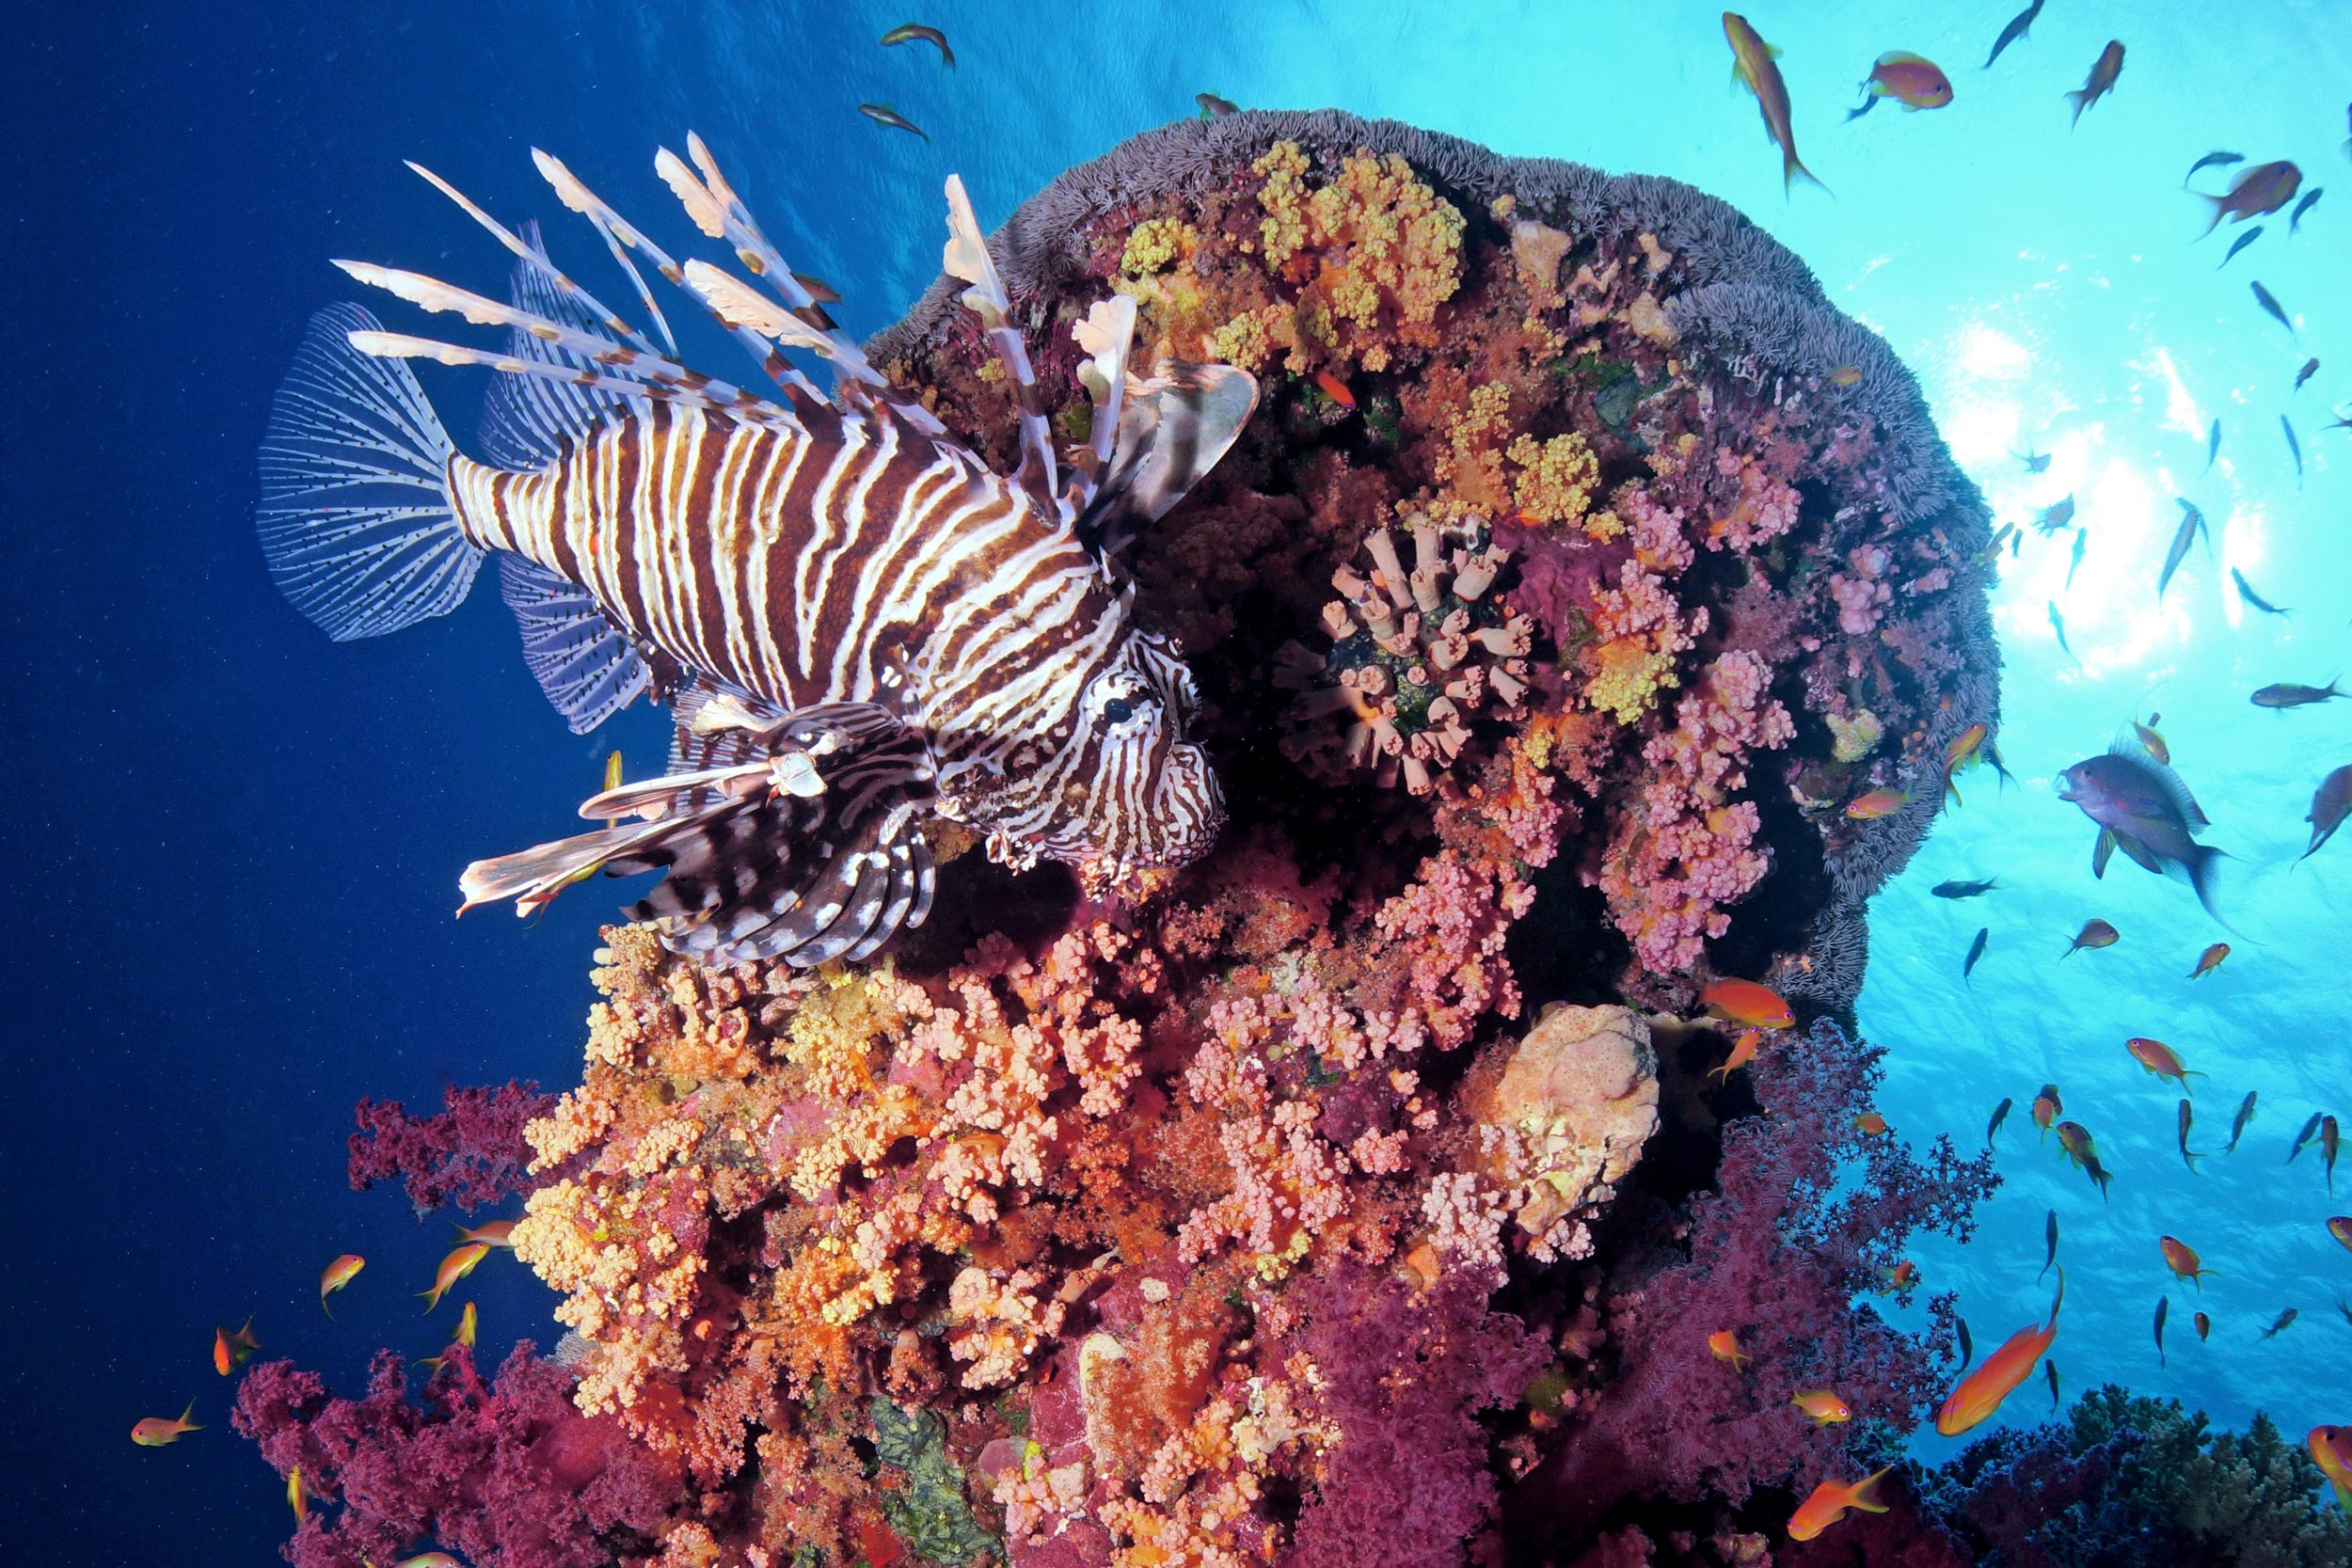 01 - LIONFISH ON REEF in the red sea credit: CINZIA OSELE BISMARCK / coral reef image bank